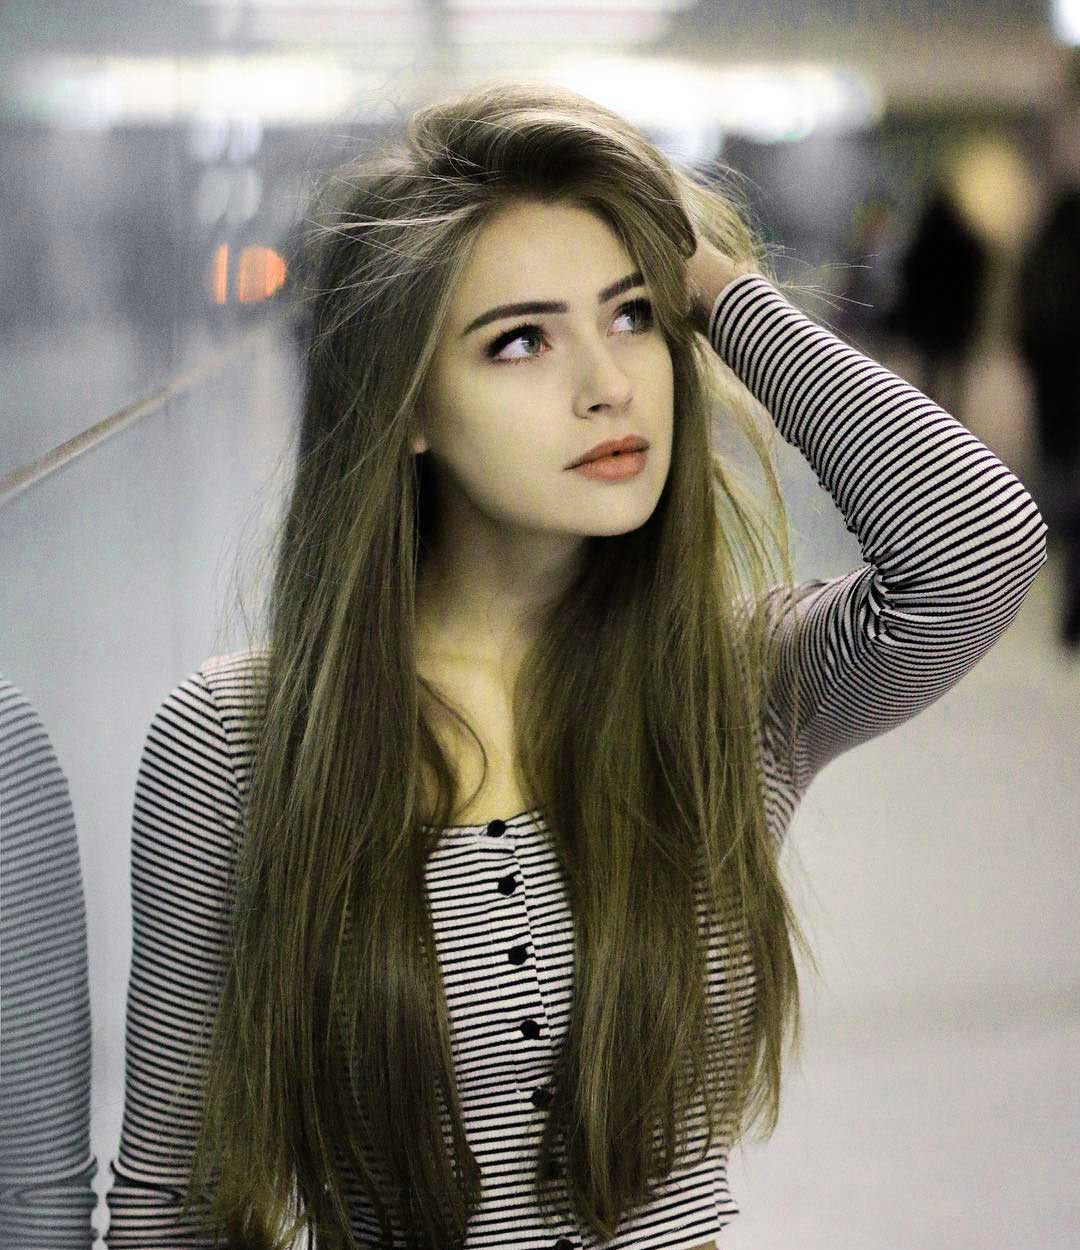 New Cute Girl Pic For Dp Free Pictures Hd